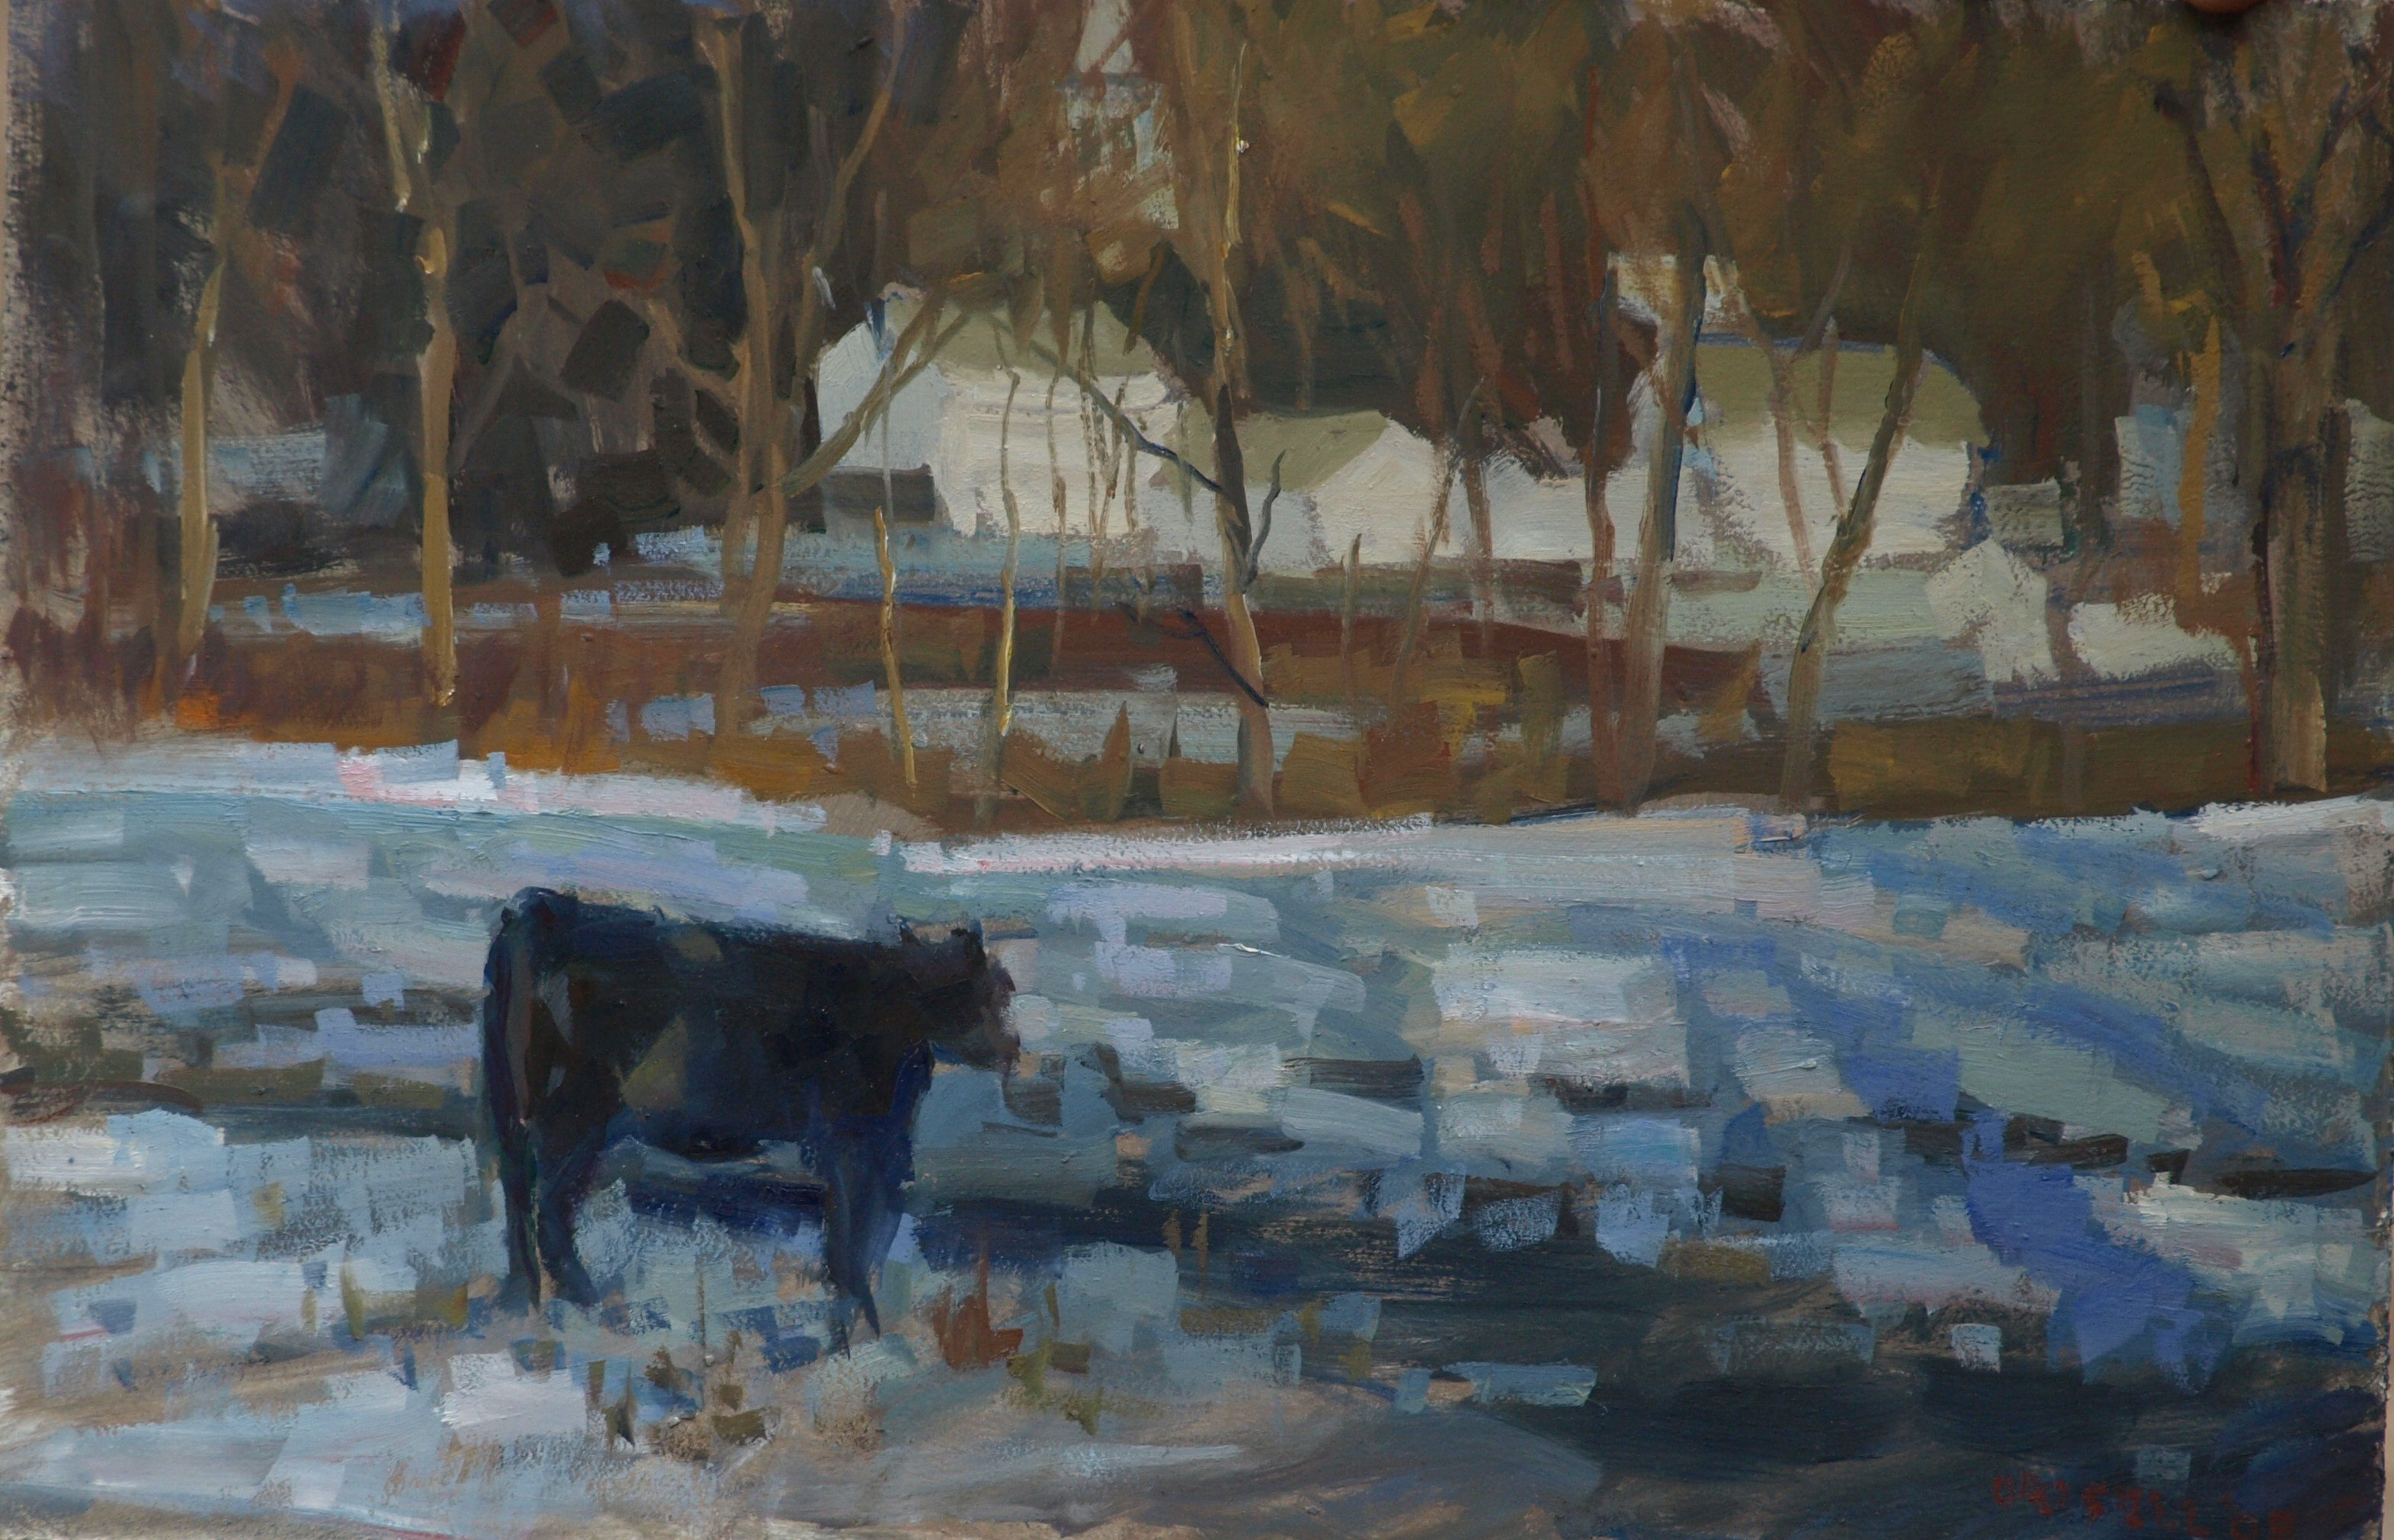 Snowy Pasture - Gaylordsville, Oil on Panel, 12 x 18 Inches, by Susan Grisell, $275